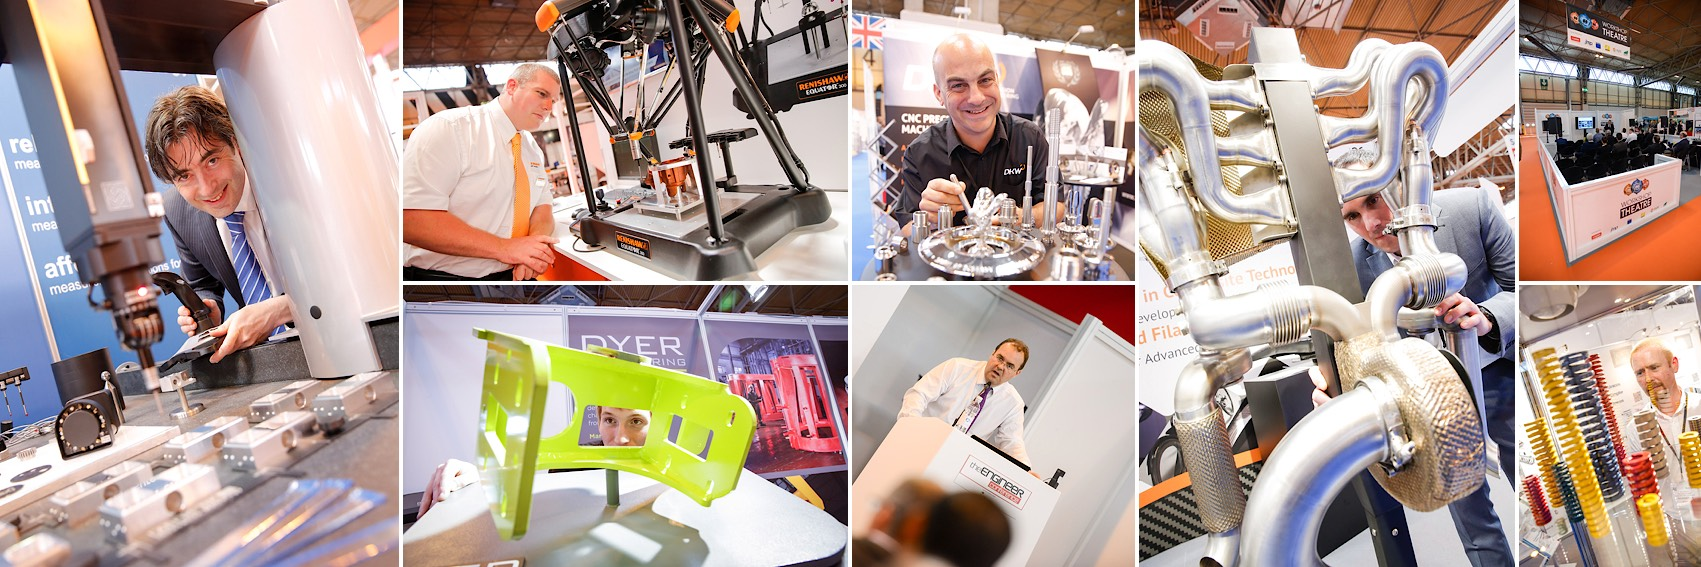 Exhibition Photographers The NEC, Olympia London, Excel London,  the Midlands and London